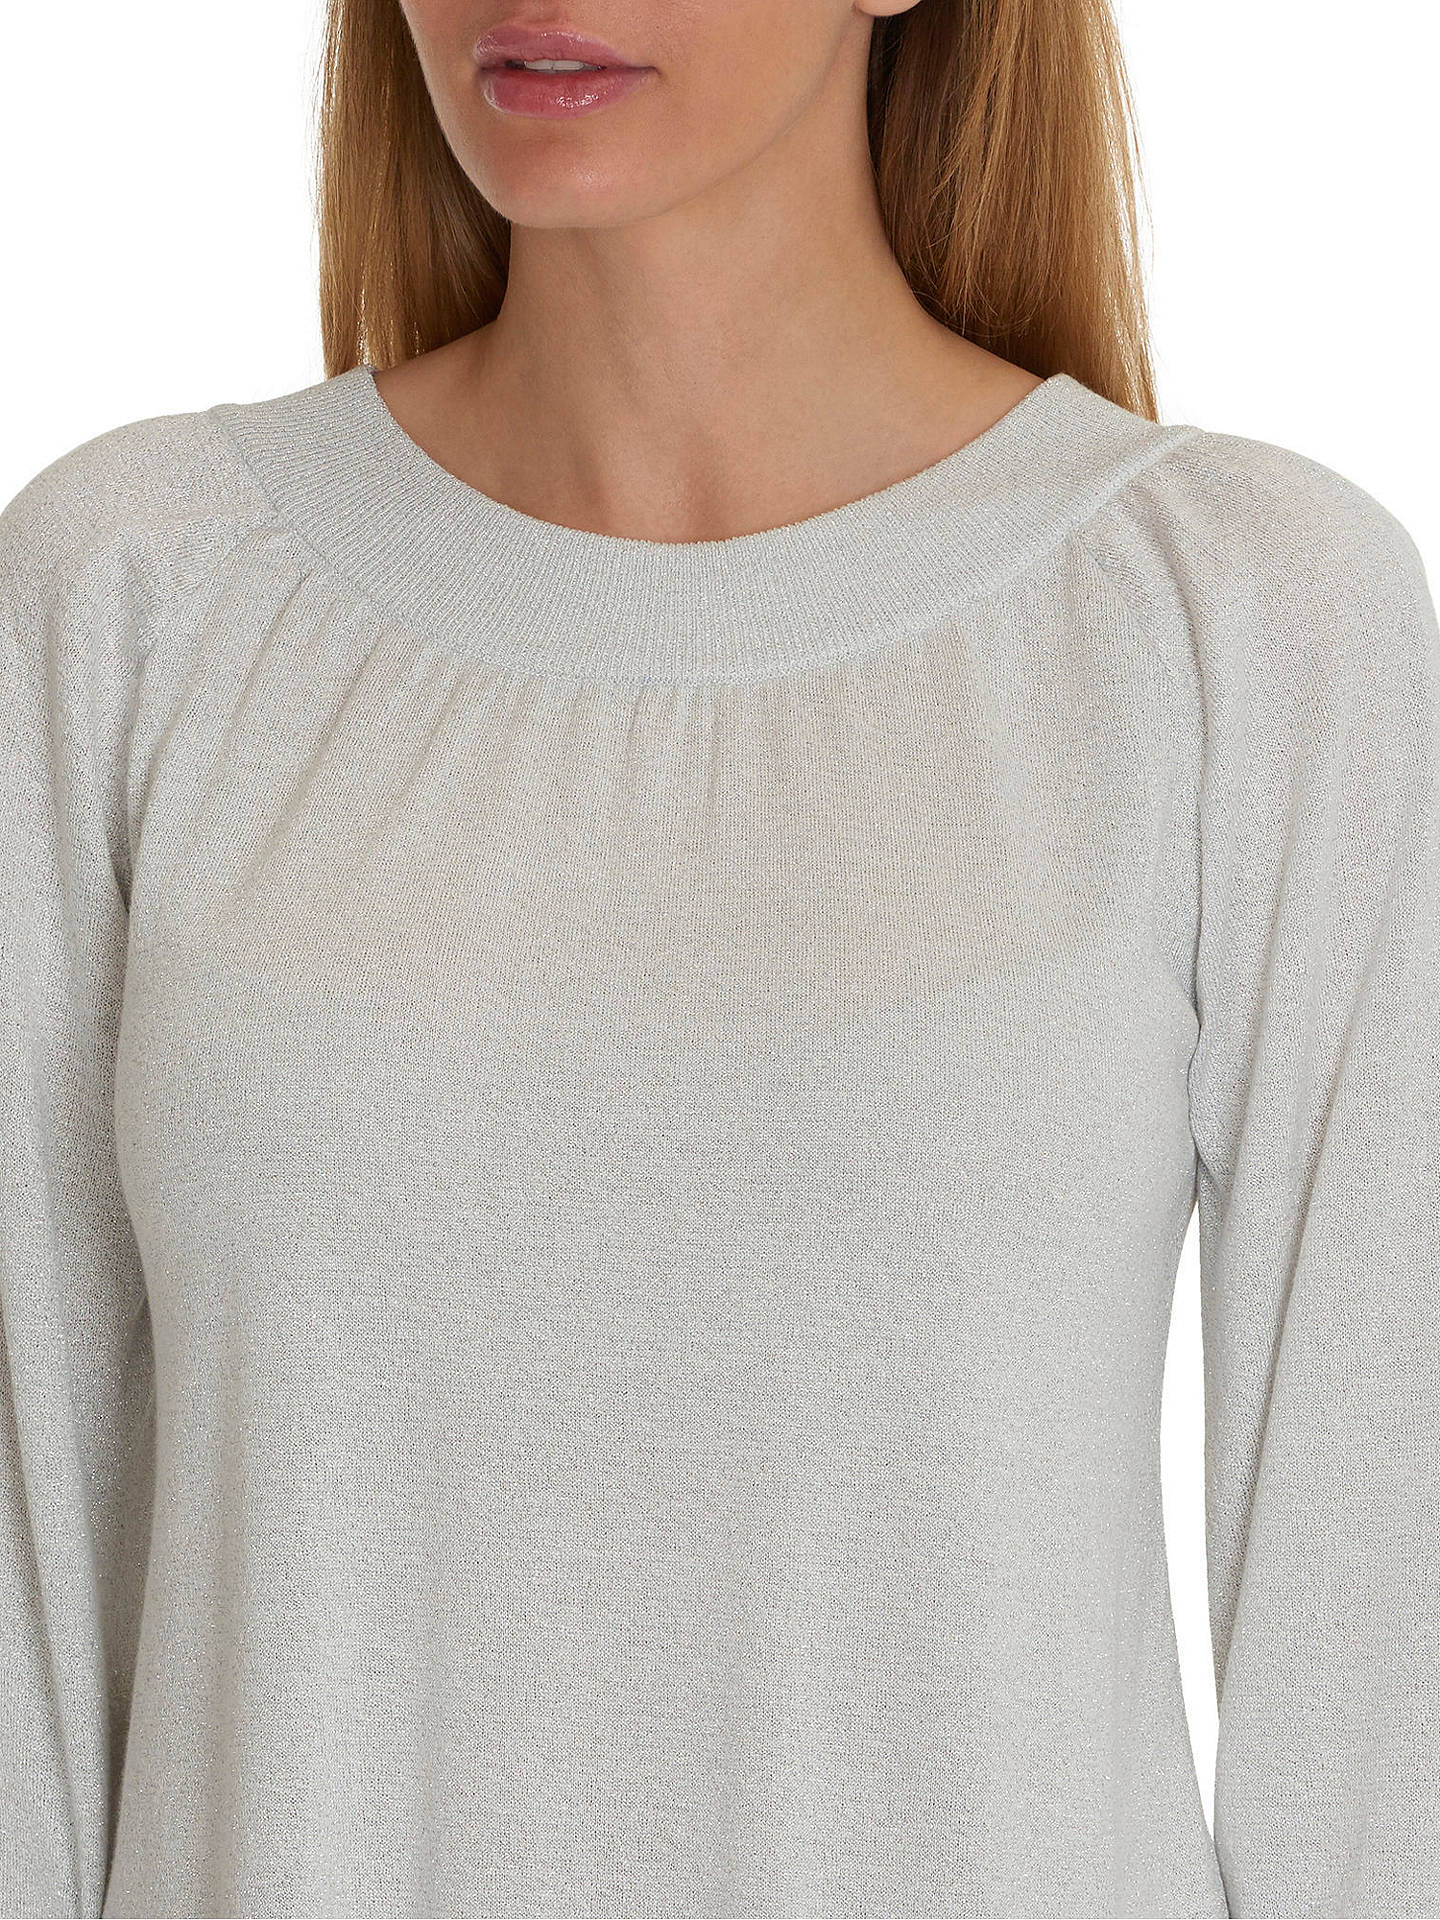 Buy Betty & Co. Fine Knit Top, Snow White, 10 Online at johnlewis.com